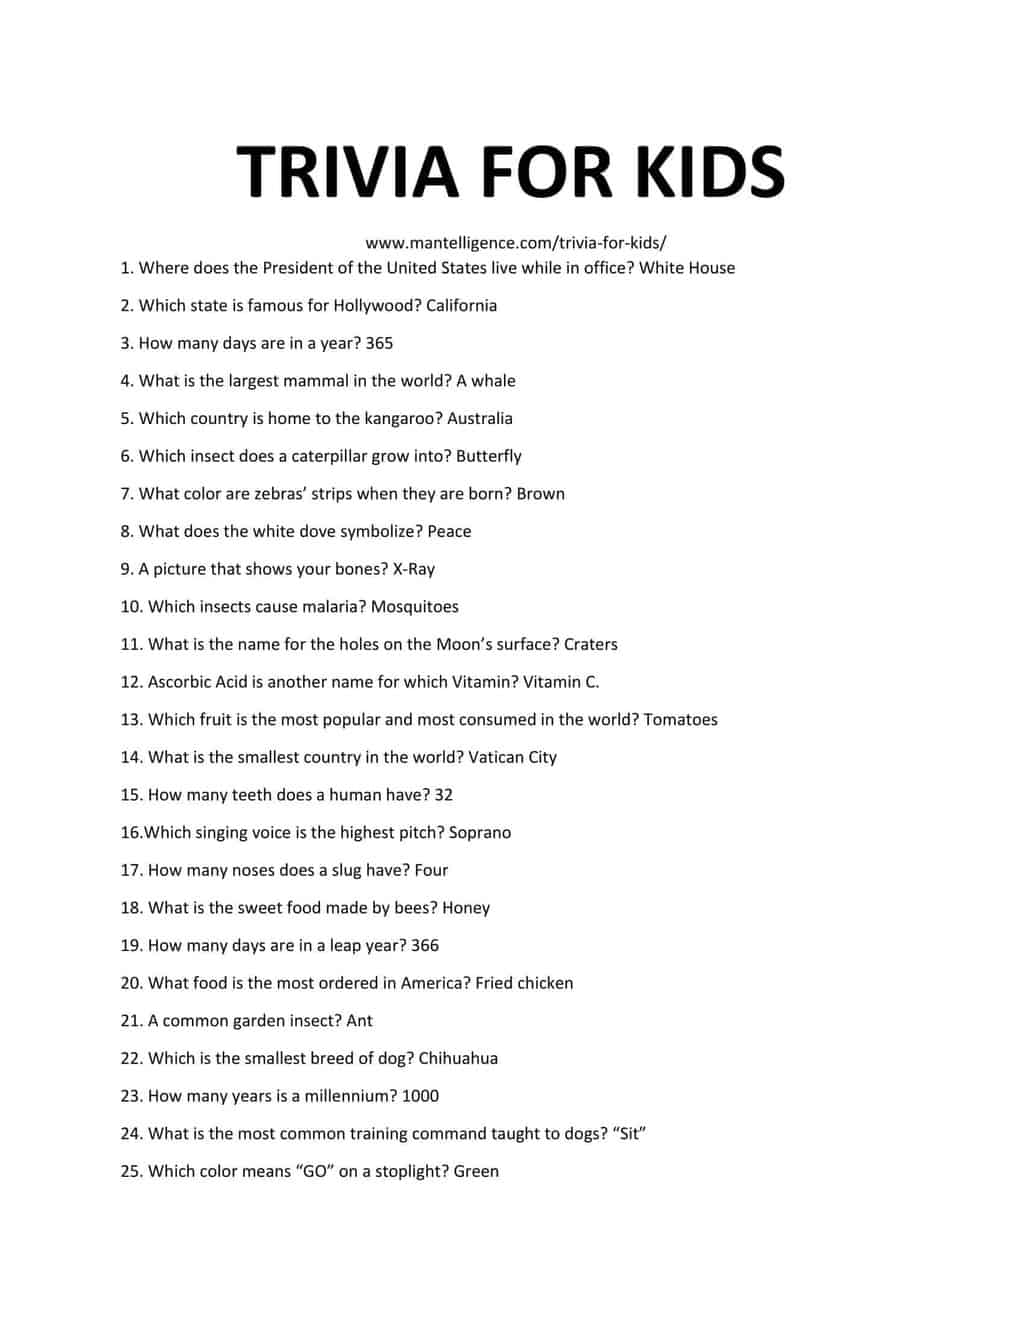 Downloadable and Printable List of Trivia For Kids